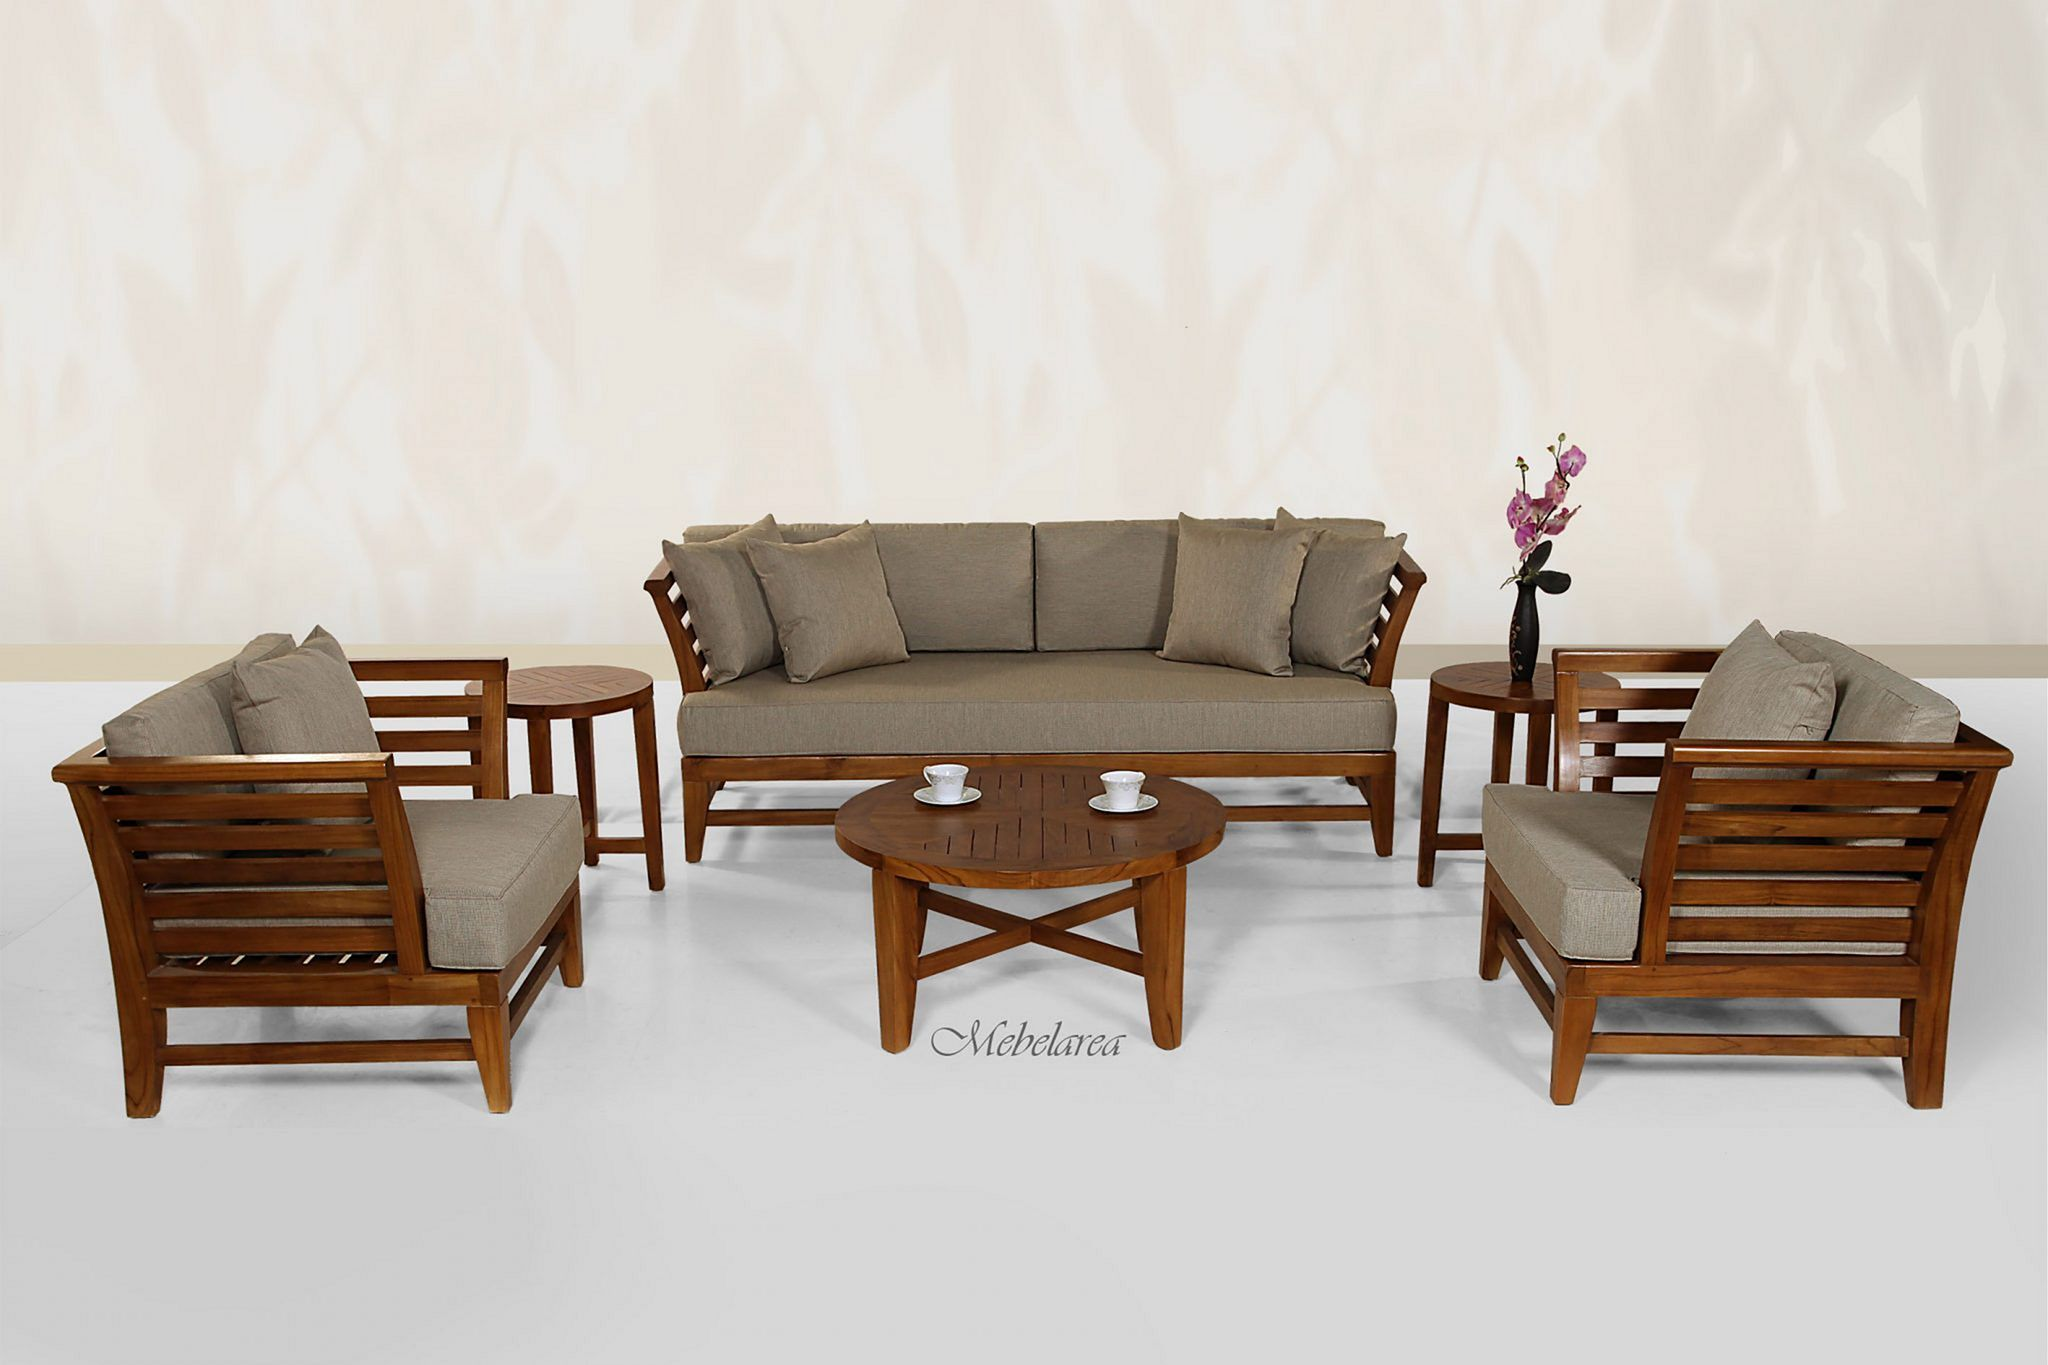 15 Wooden Sofa Ideas To Beautify Your Living Room Wooden Sofa Set Designs Wooden Sofa Designs Wooden Sofa Set #wooden #sofas #for #living #room